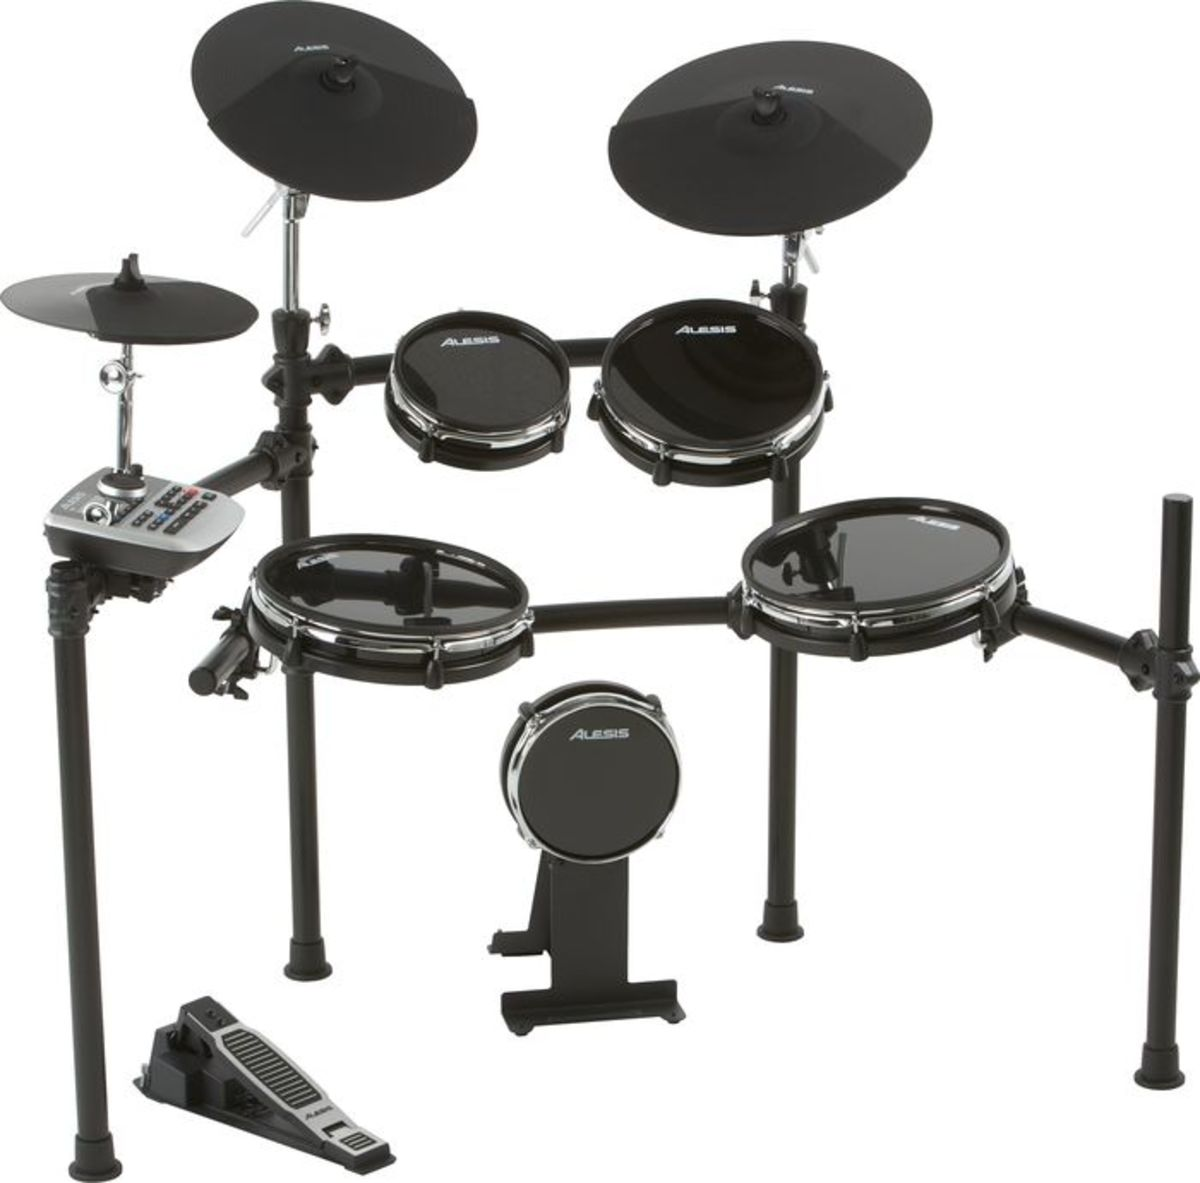 Alesis DM6 Nitro eight-piece compact beginner electronic drum set.